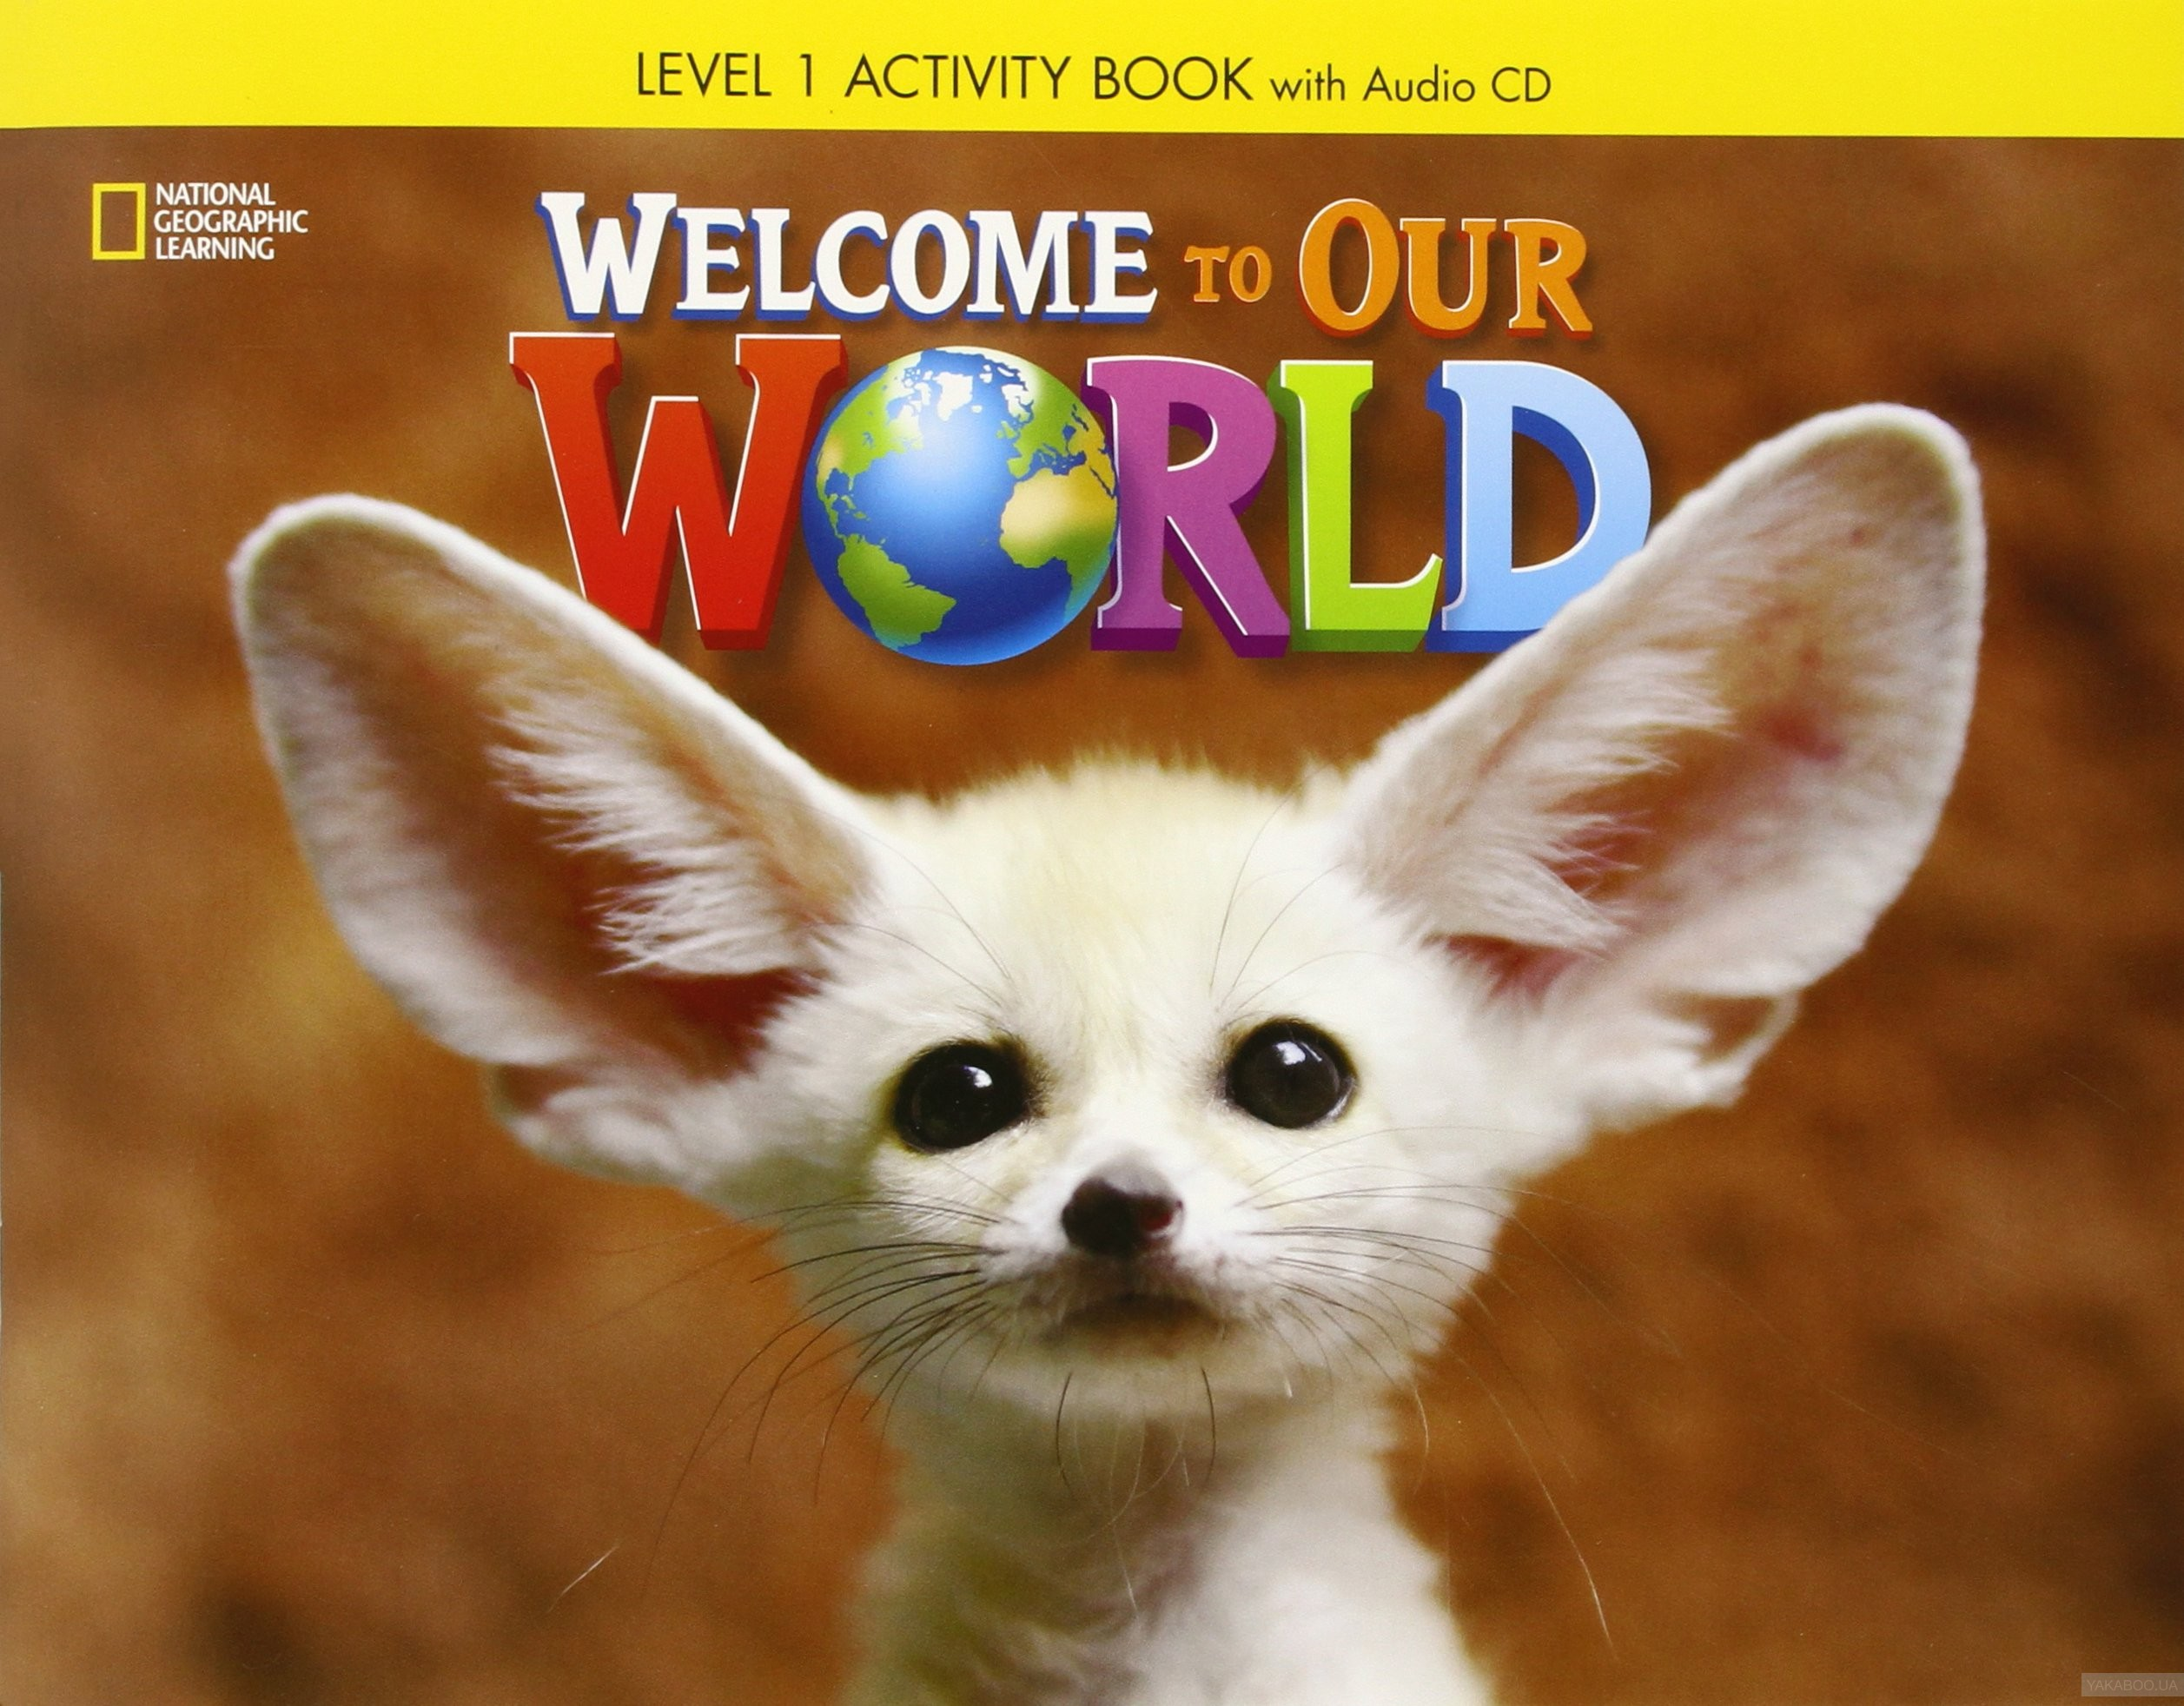 Welcome to Our World 1: Activity Book